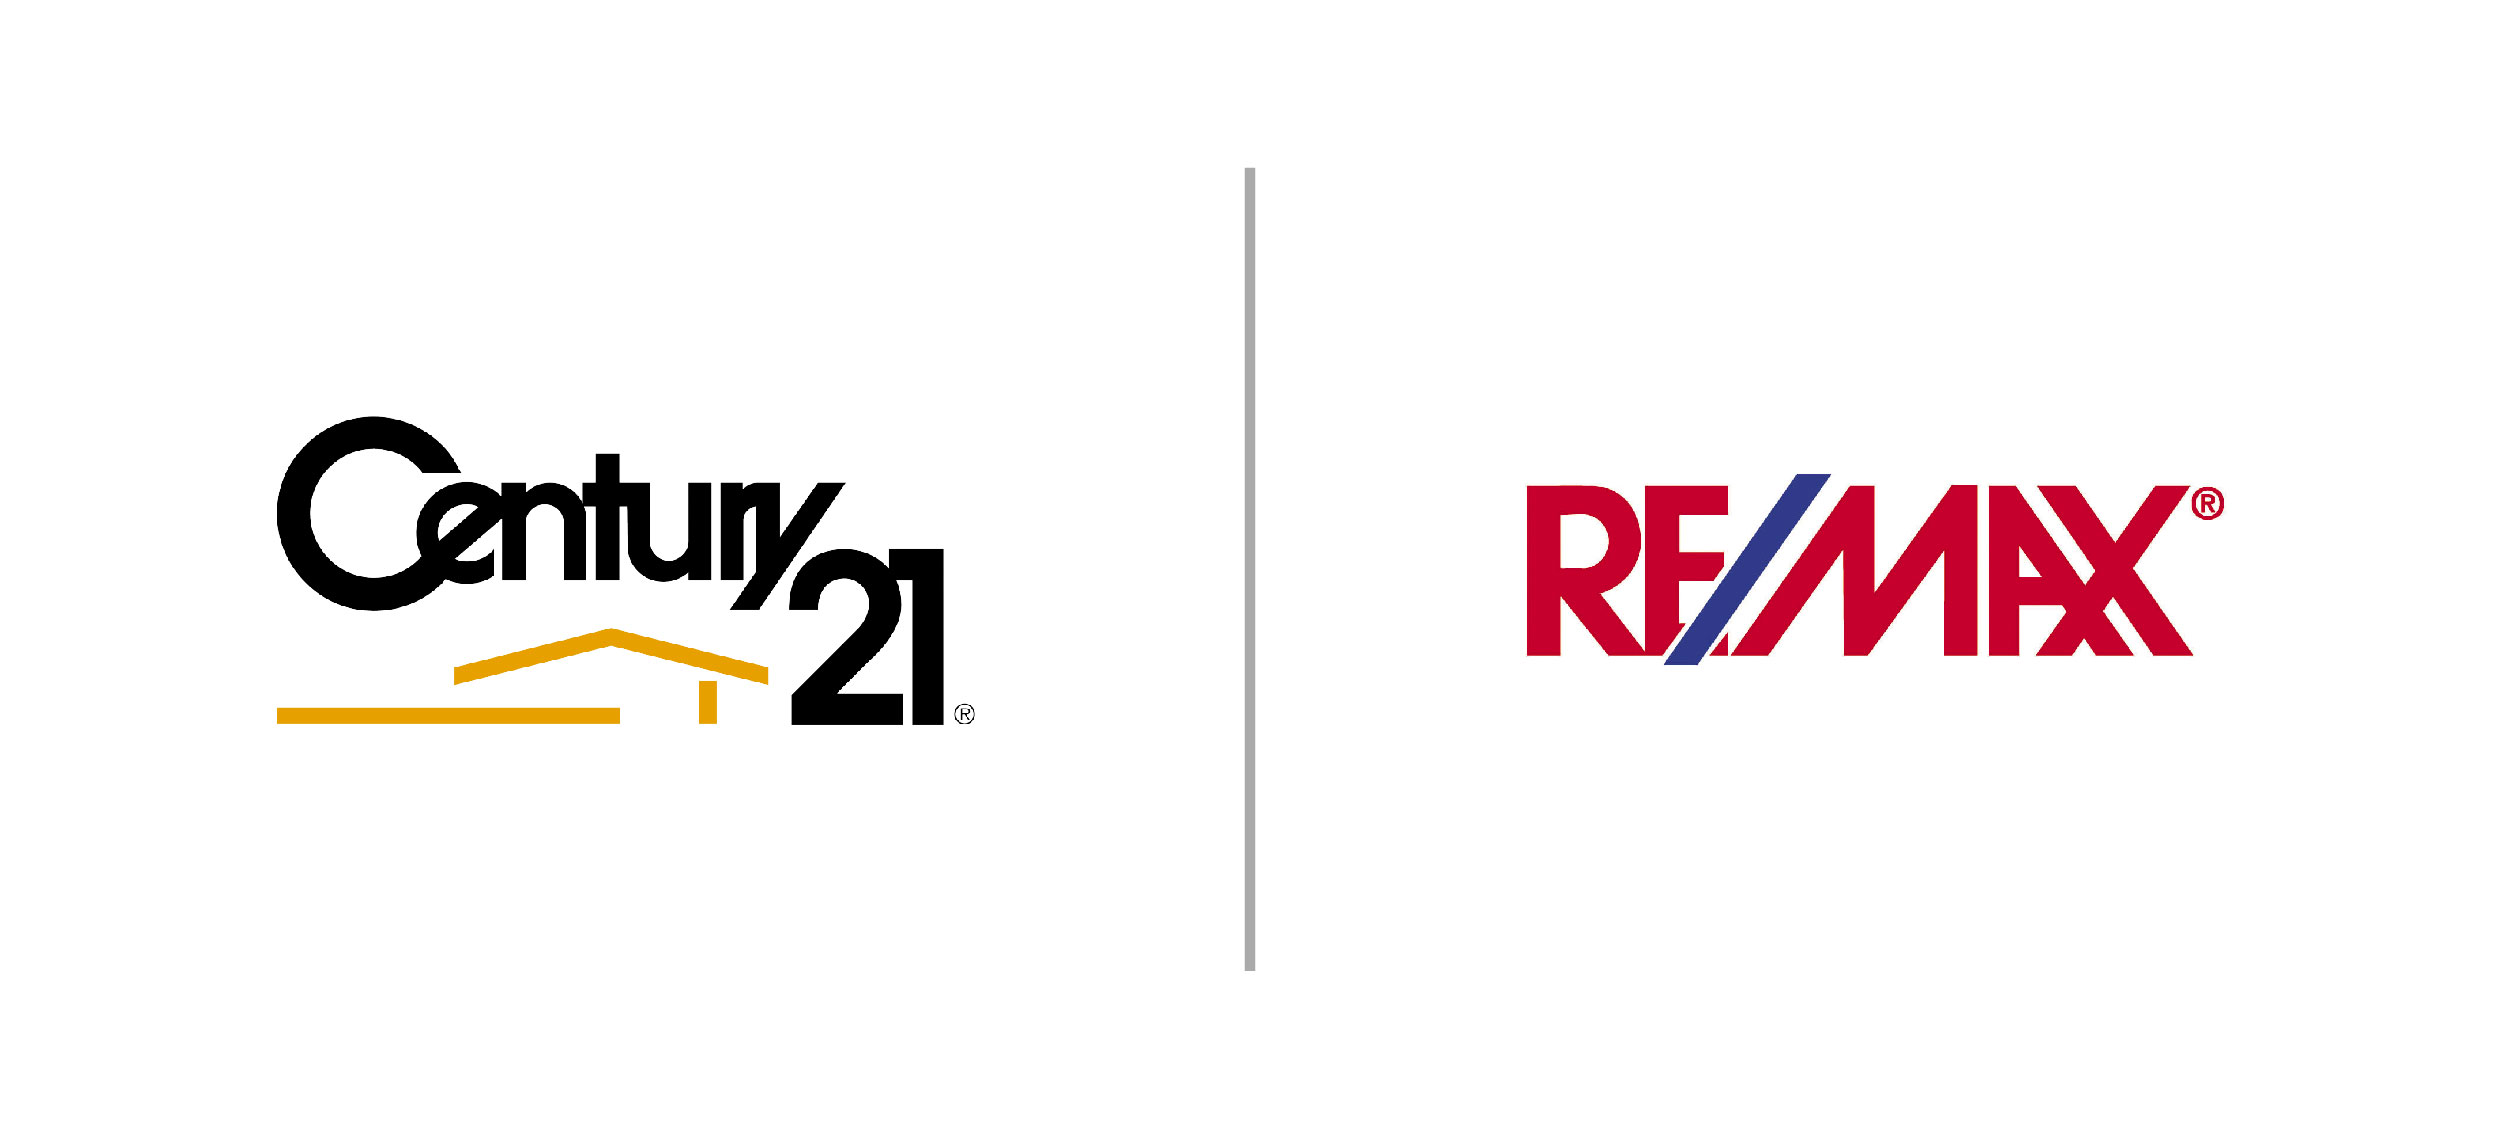 REMAX and Century 21 Logos